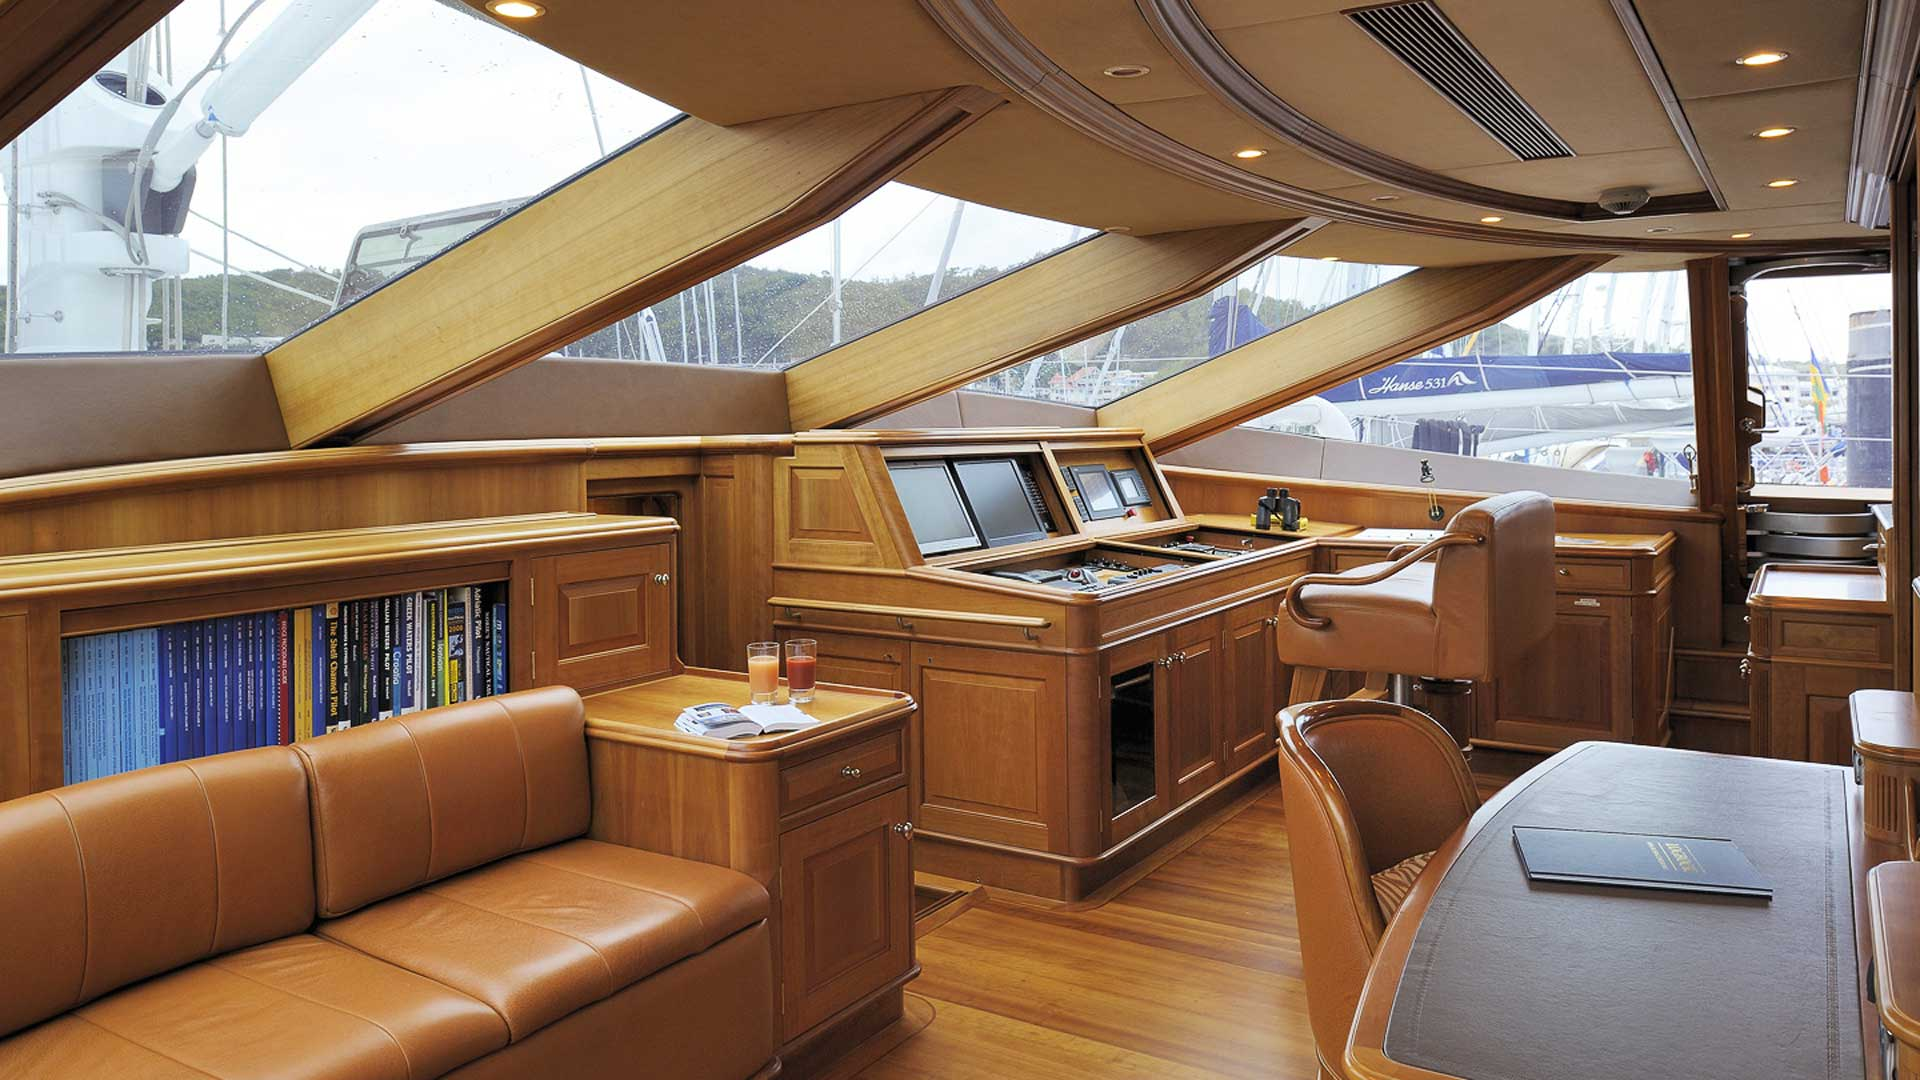 Interior Cockpit, Drumbeat Superyacht